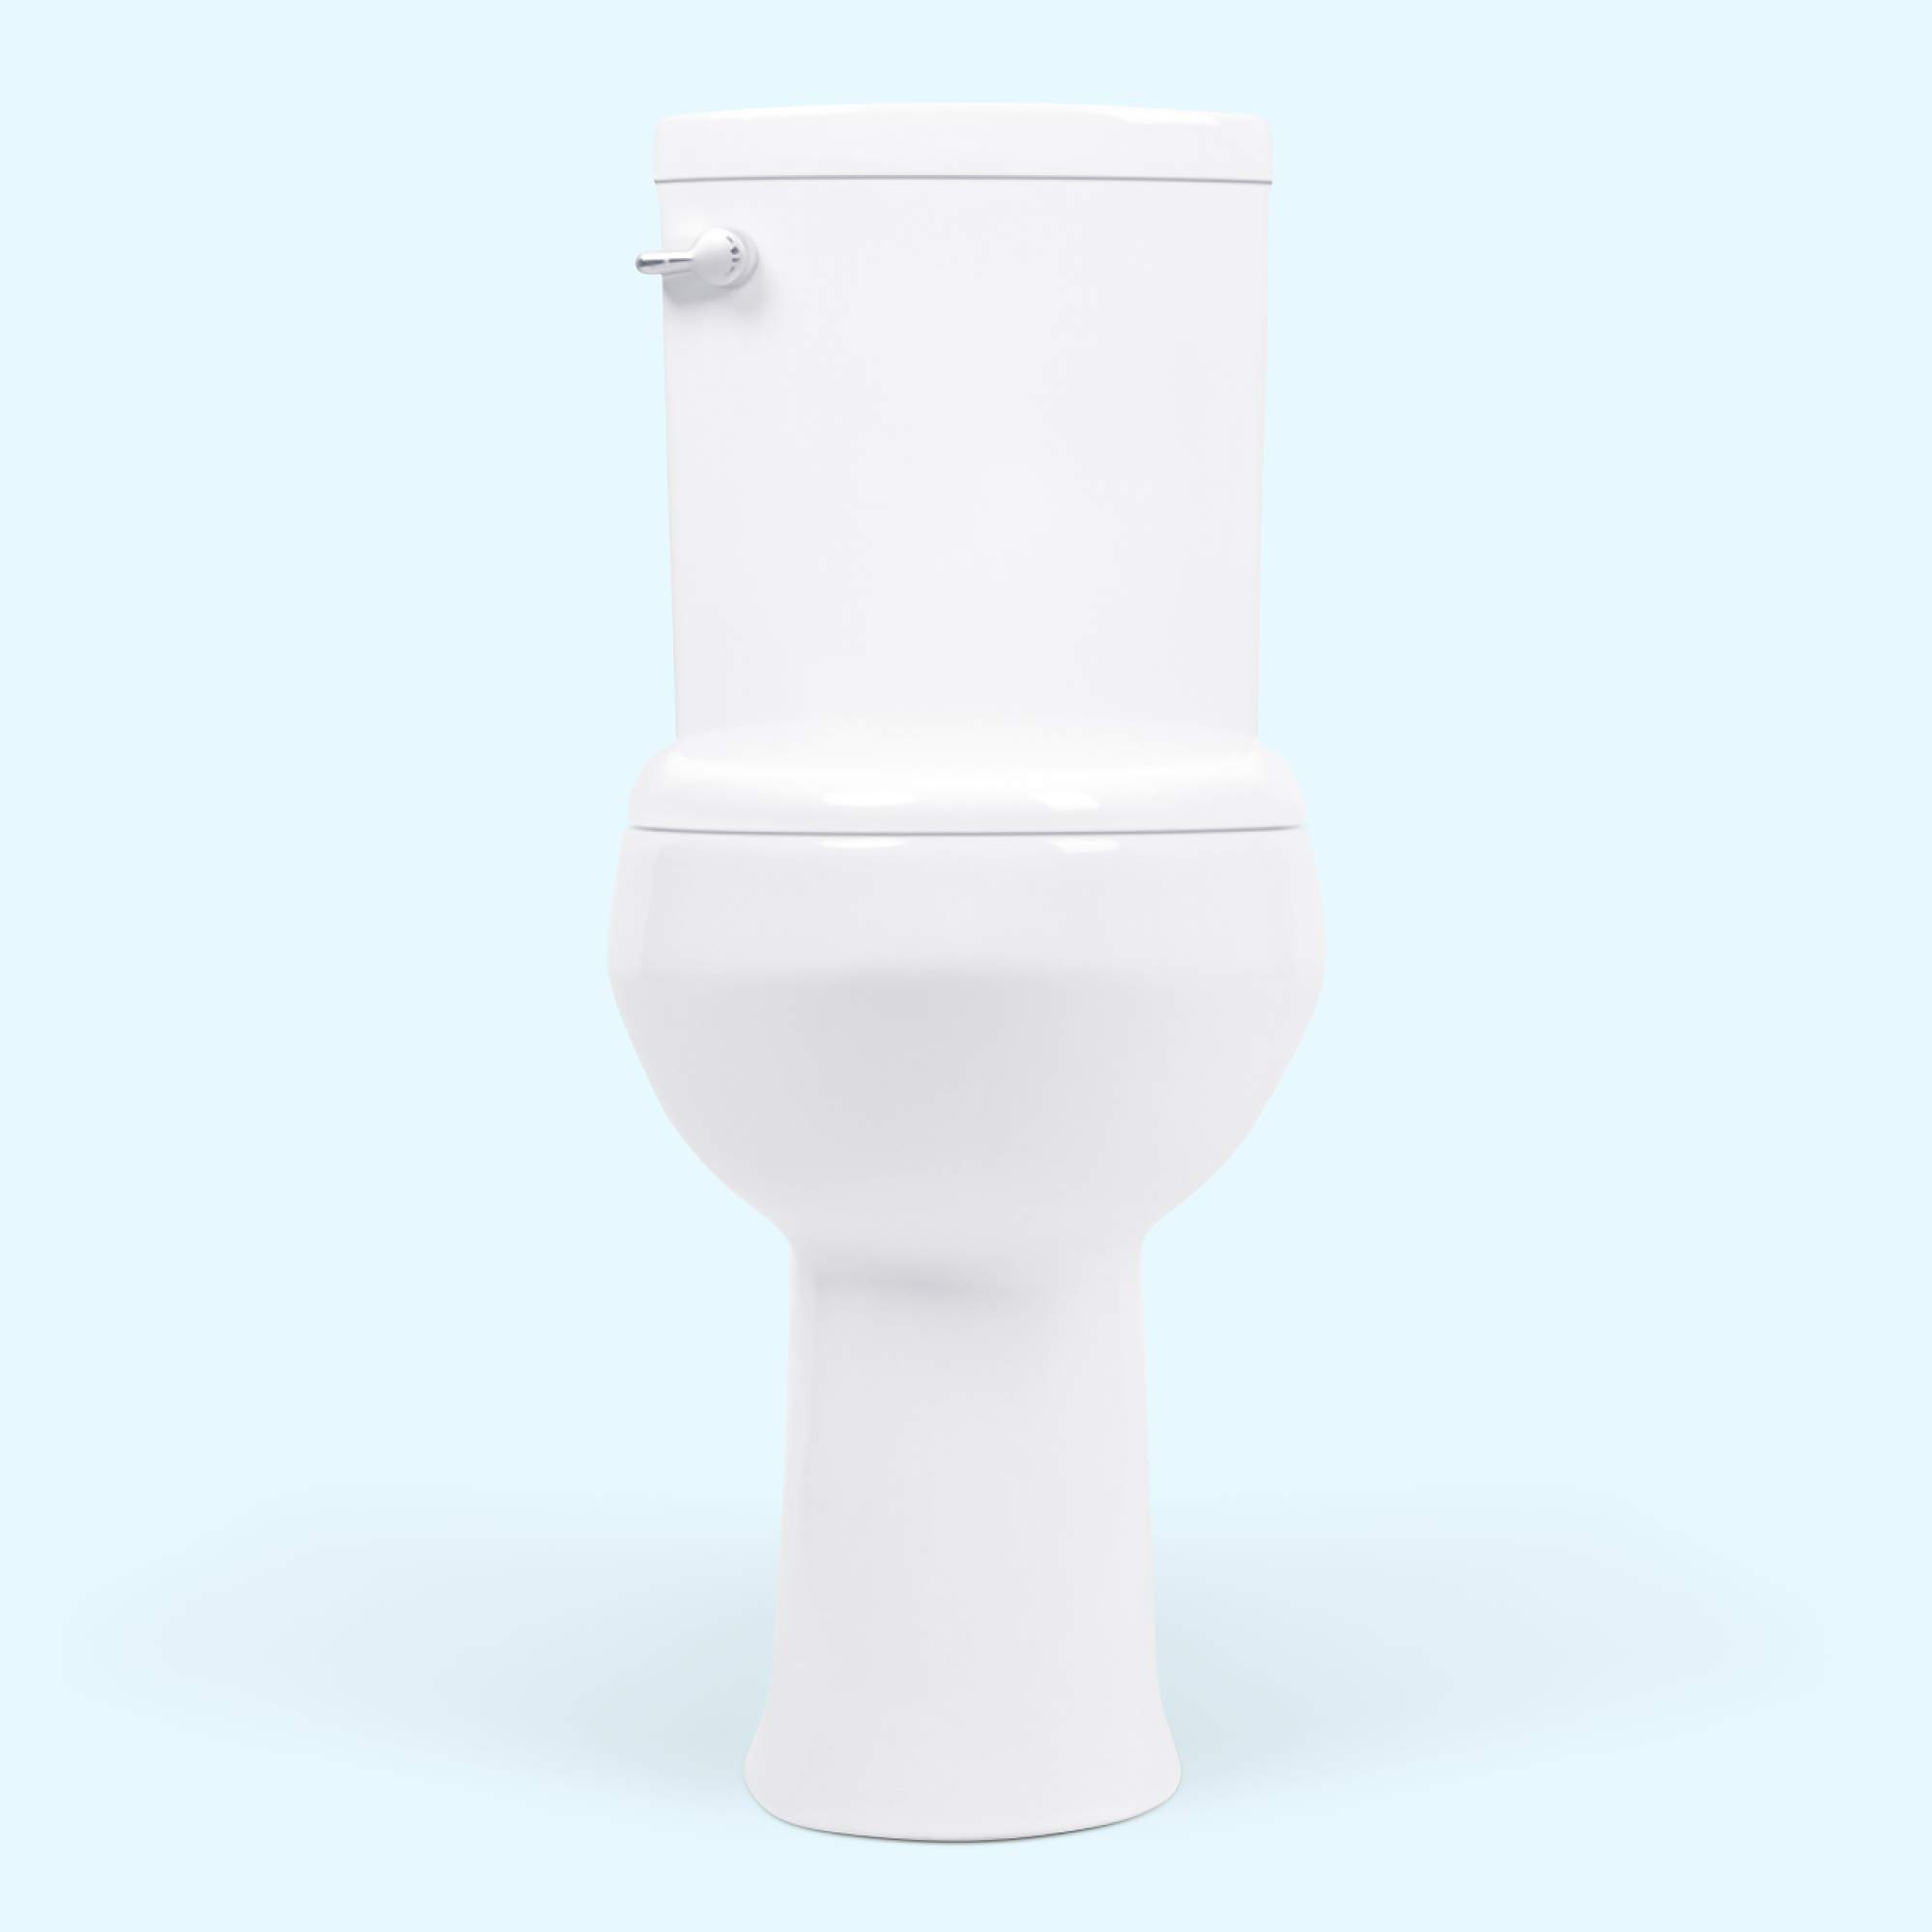 Groovy 20 Inch Extra Tall Toilet Made By Convenient Height Co Bowl Taller Than Ada Comfort Height Dual Flush Slow Close Seat New Handle Camellatalisay Diy Chair Ideas Camellatalisaycom